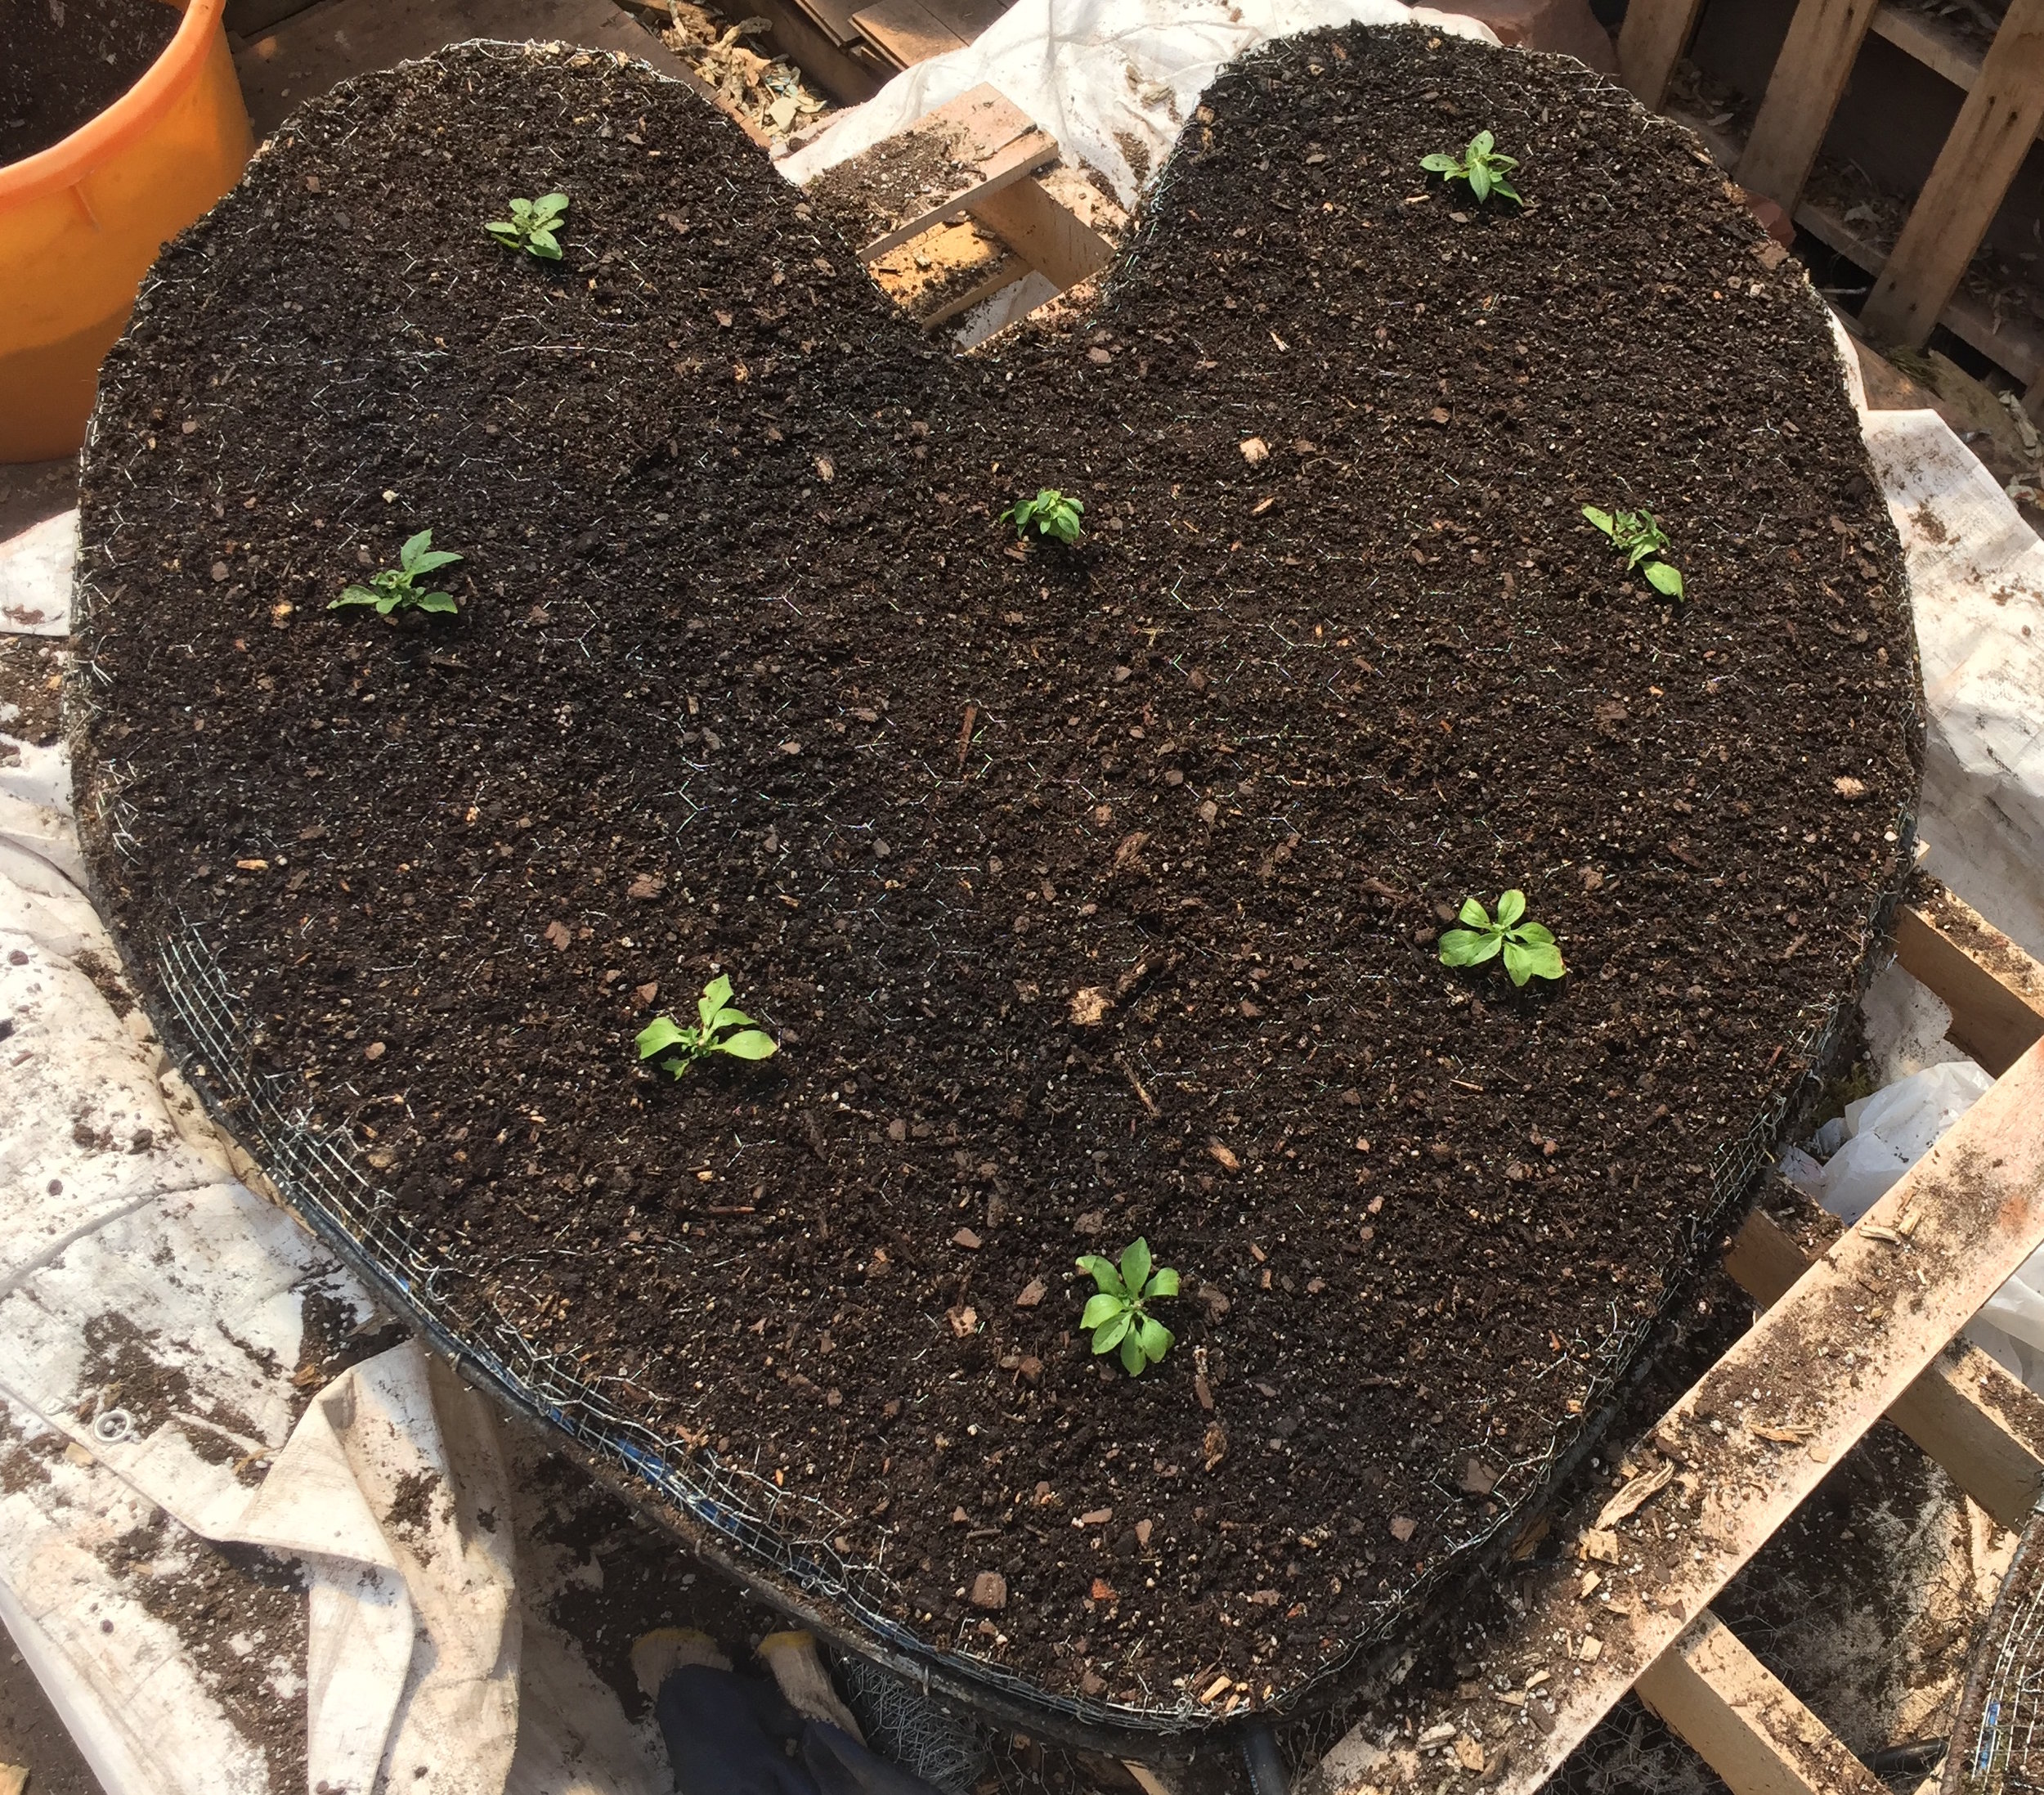 The Petunia plugs are planted